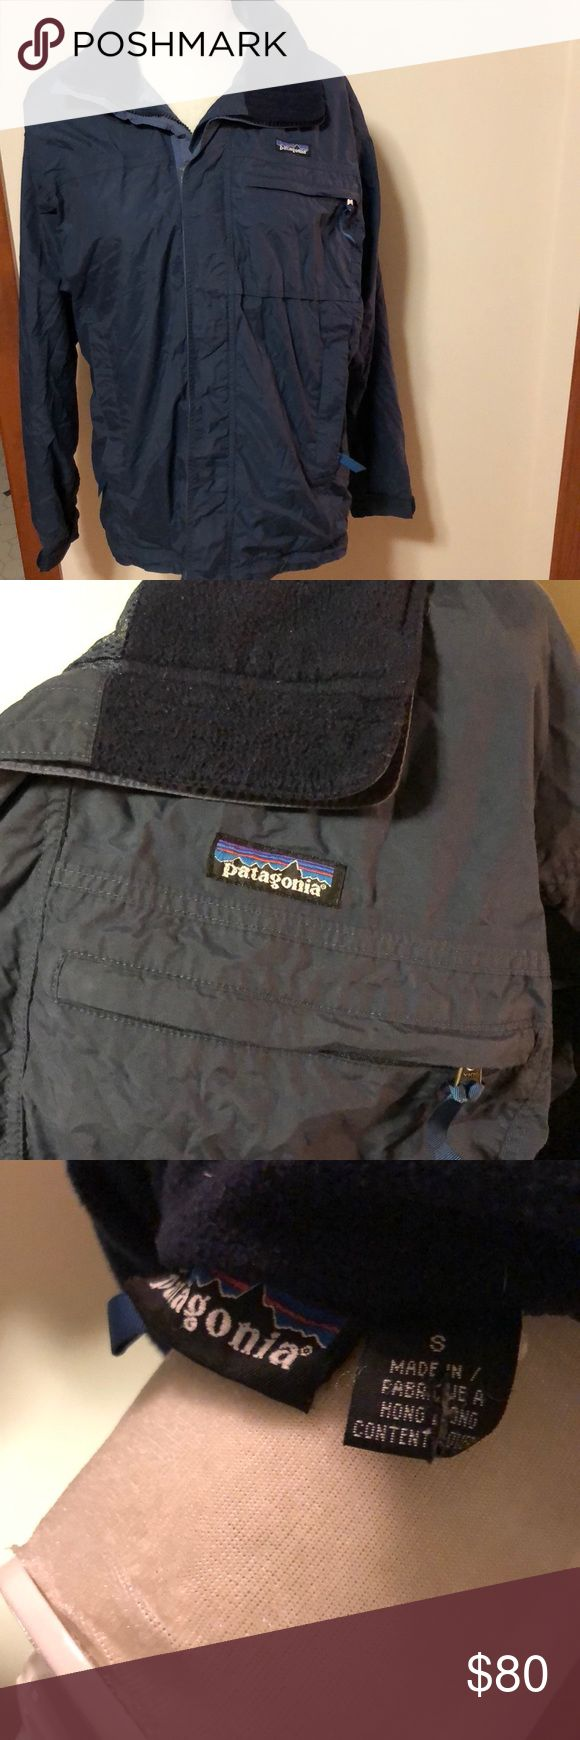 PATAGONIA ski jacket Size small men's (also could be worn by women) navy ski jacket in great condition! (Only flaw is wear on hood but hood can be rolled up like shown in photos)! Shell/lining are 100% nylon. Patagonia Jackets & Coats